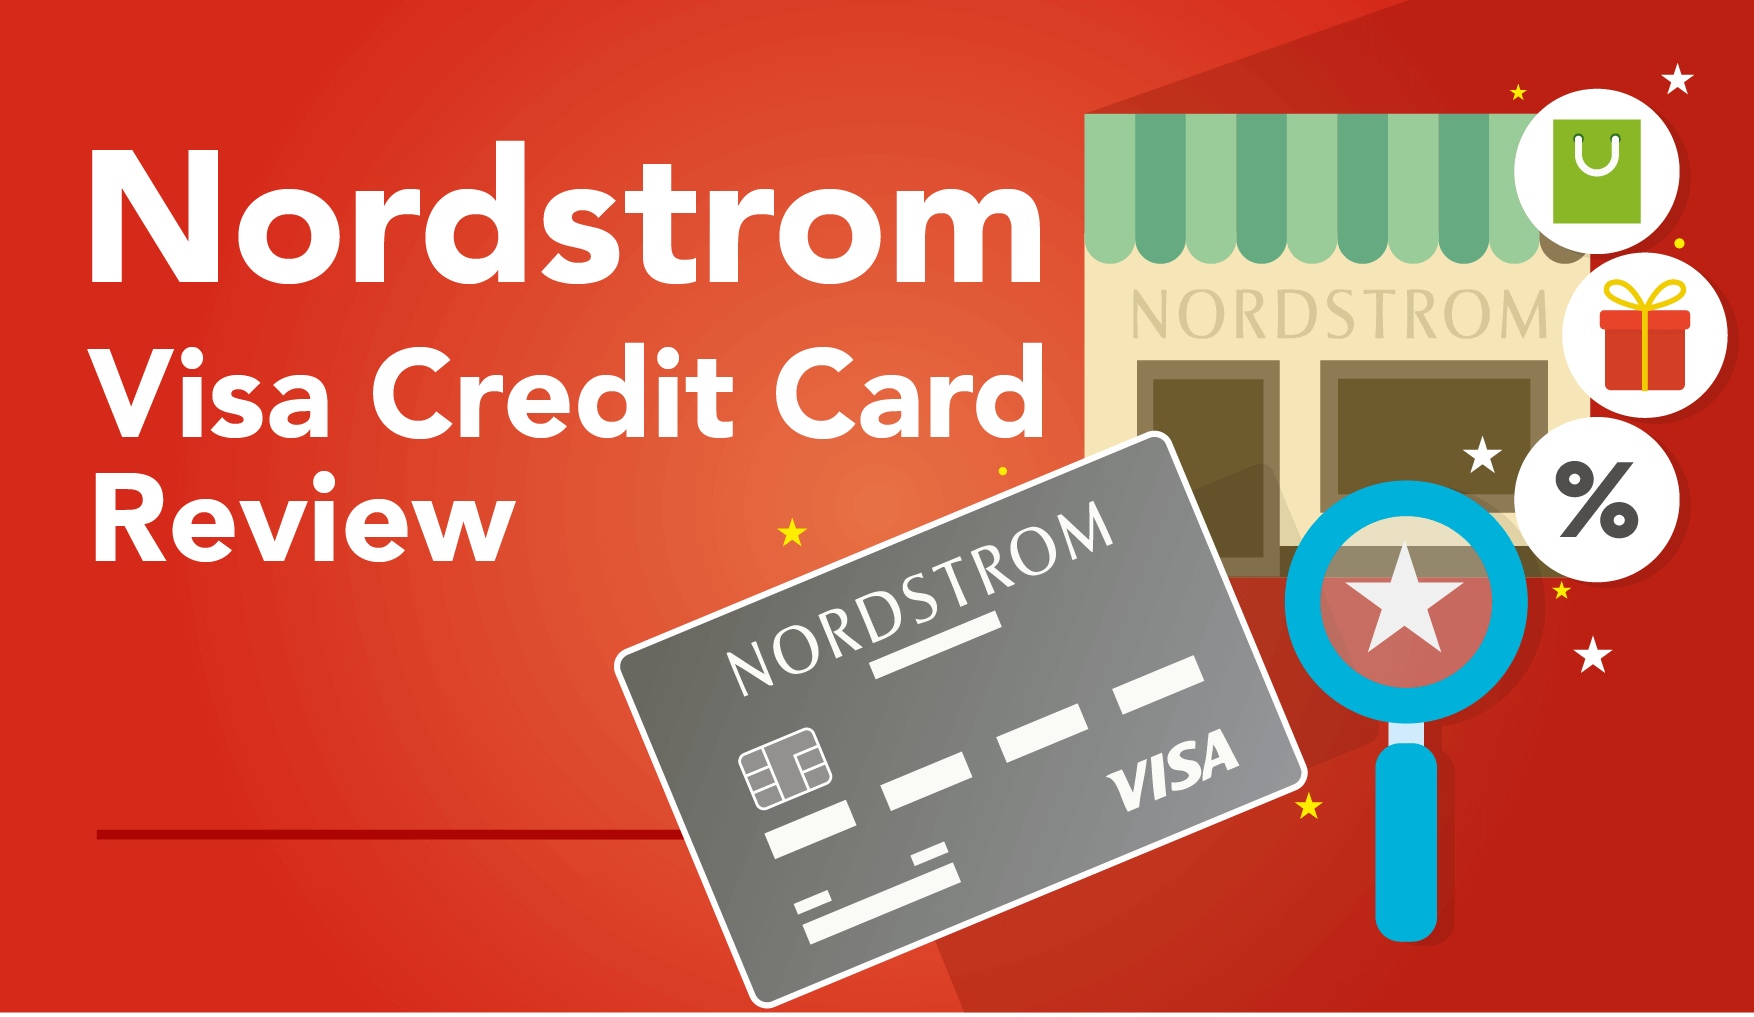 Capital One Auto Loan Payment >> Nordstrom Visa Credit Card Review - CreditLoan.com®